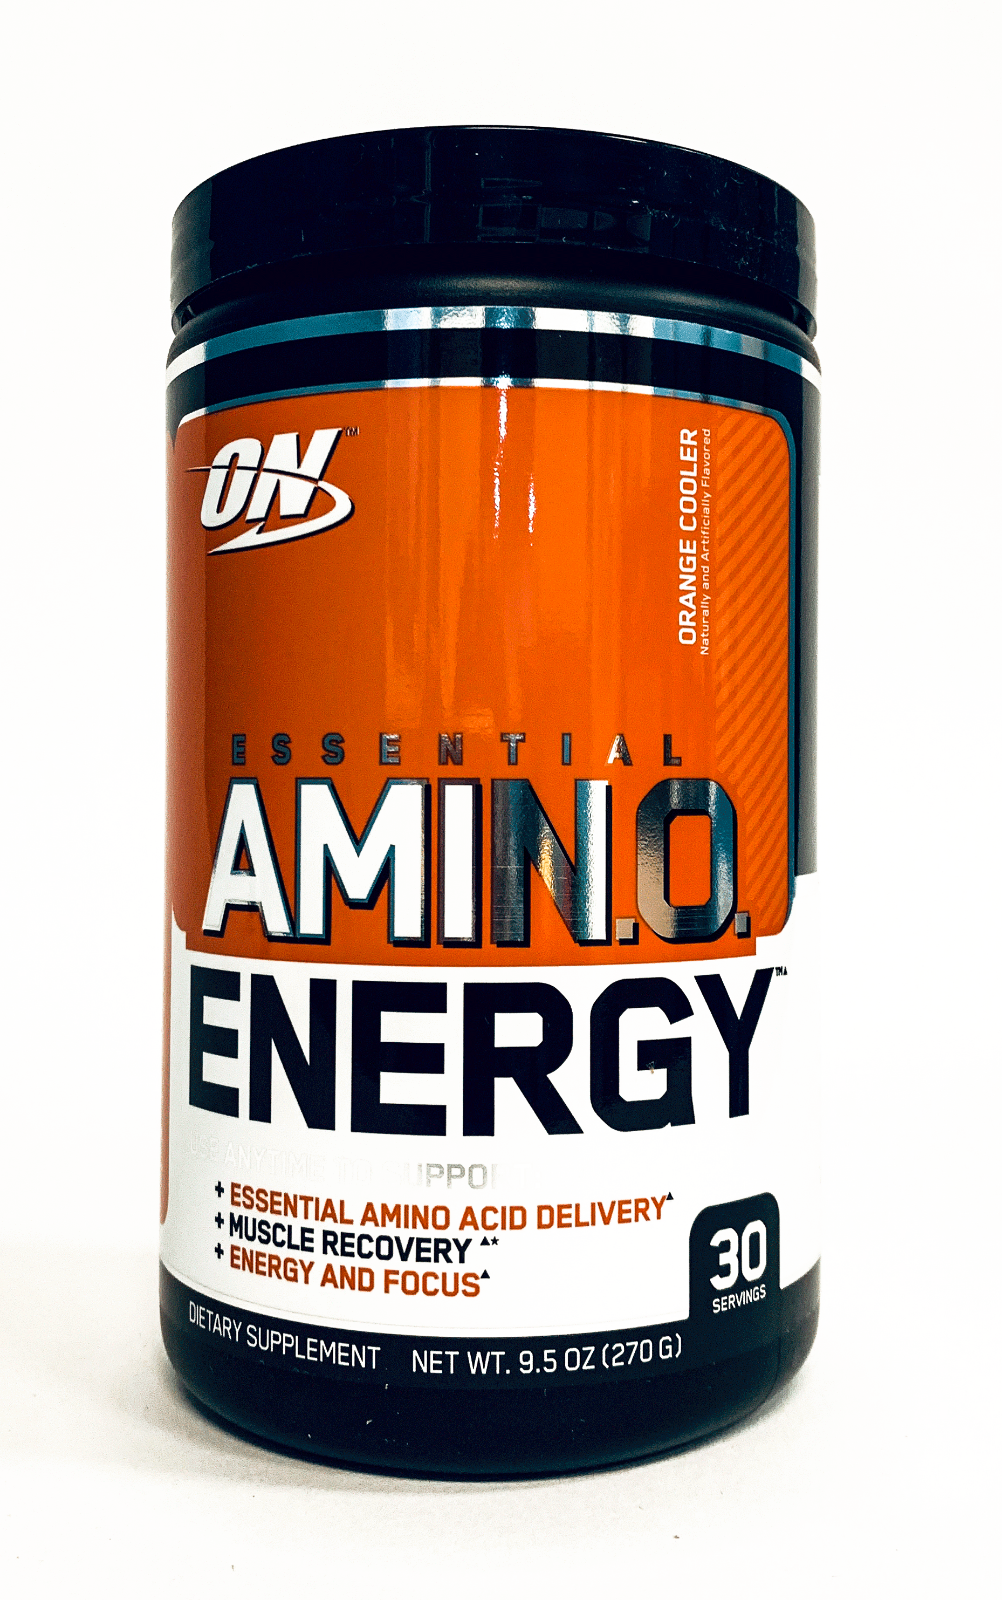 Optimum AMINO ENERGY Beta Alanine Amino Acid PROTEIN  - 30 S